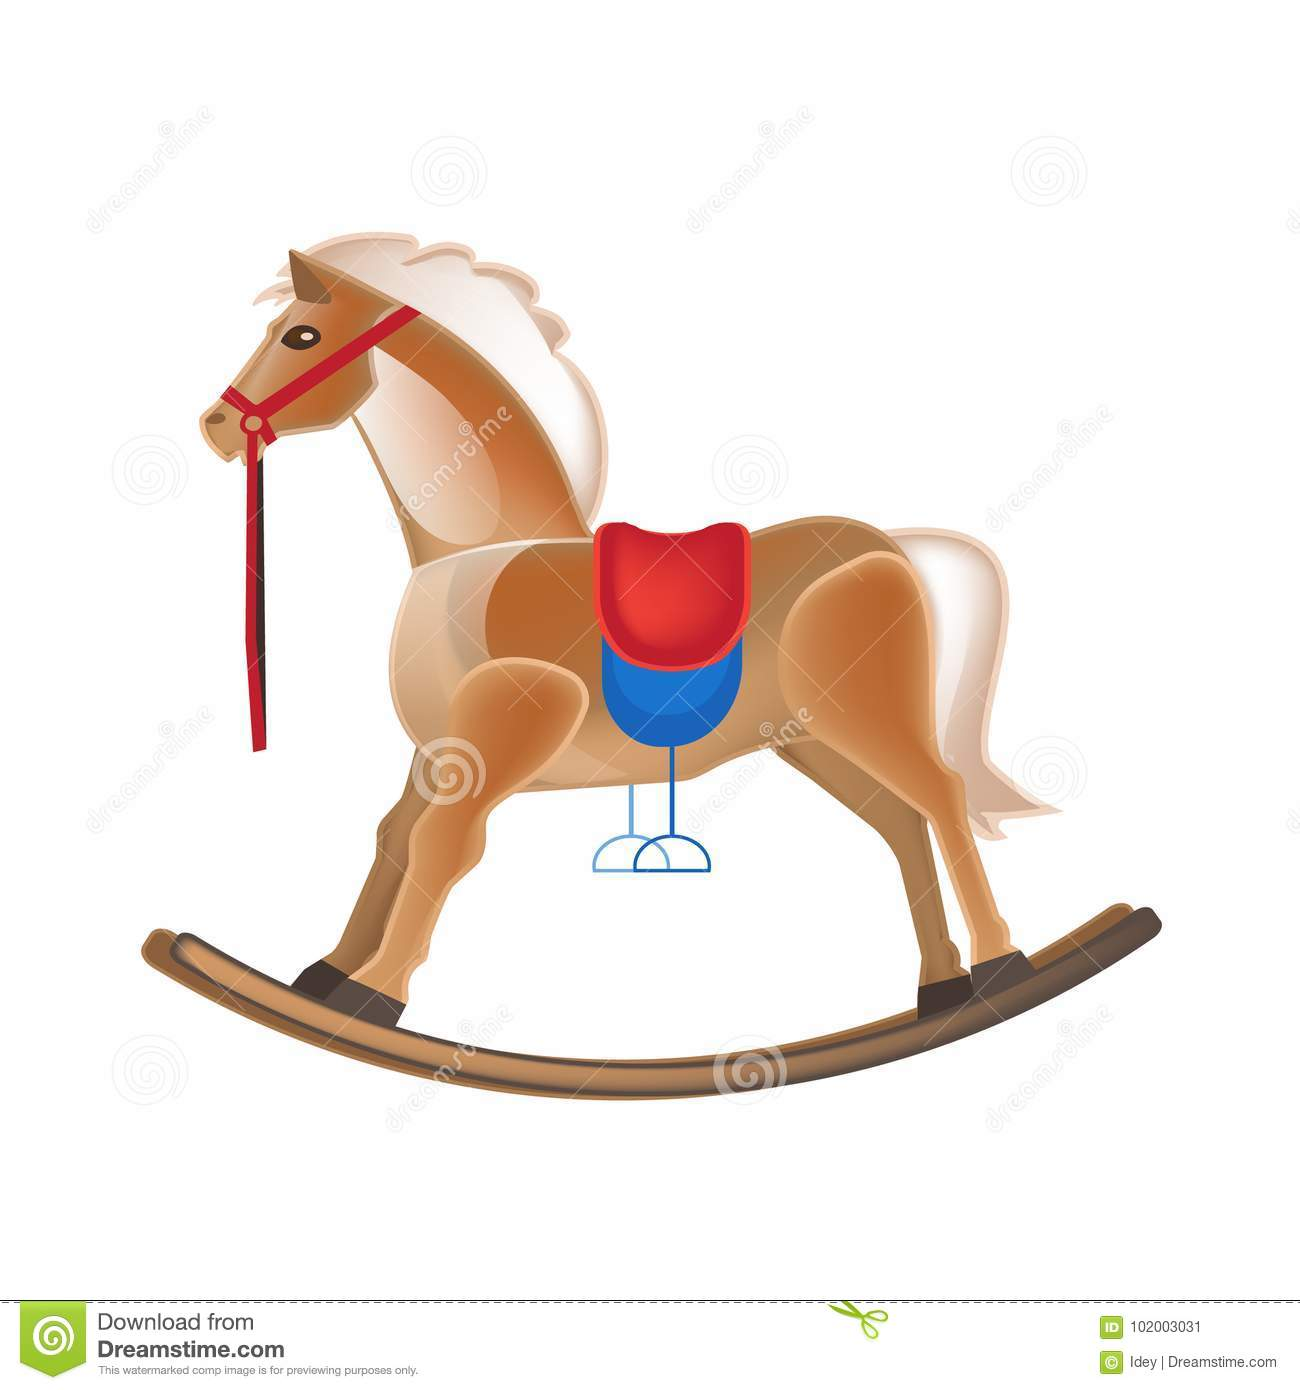 Modern colorful children`s toys. Horse rocking, entertainment, swing, carousel.